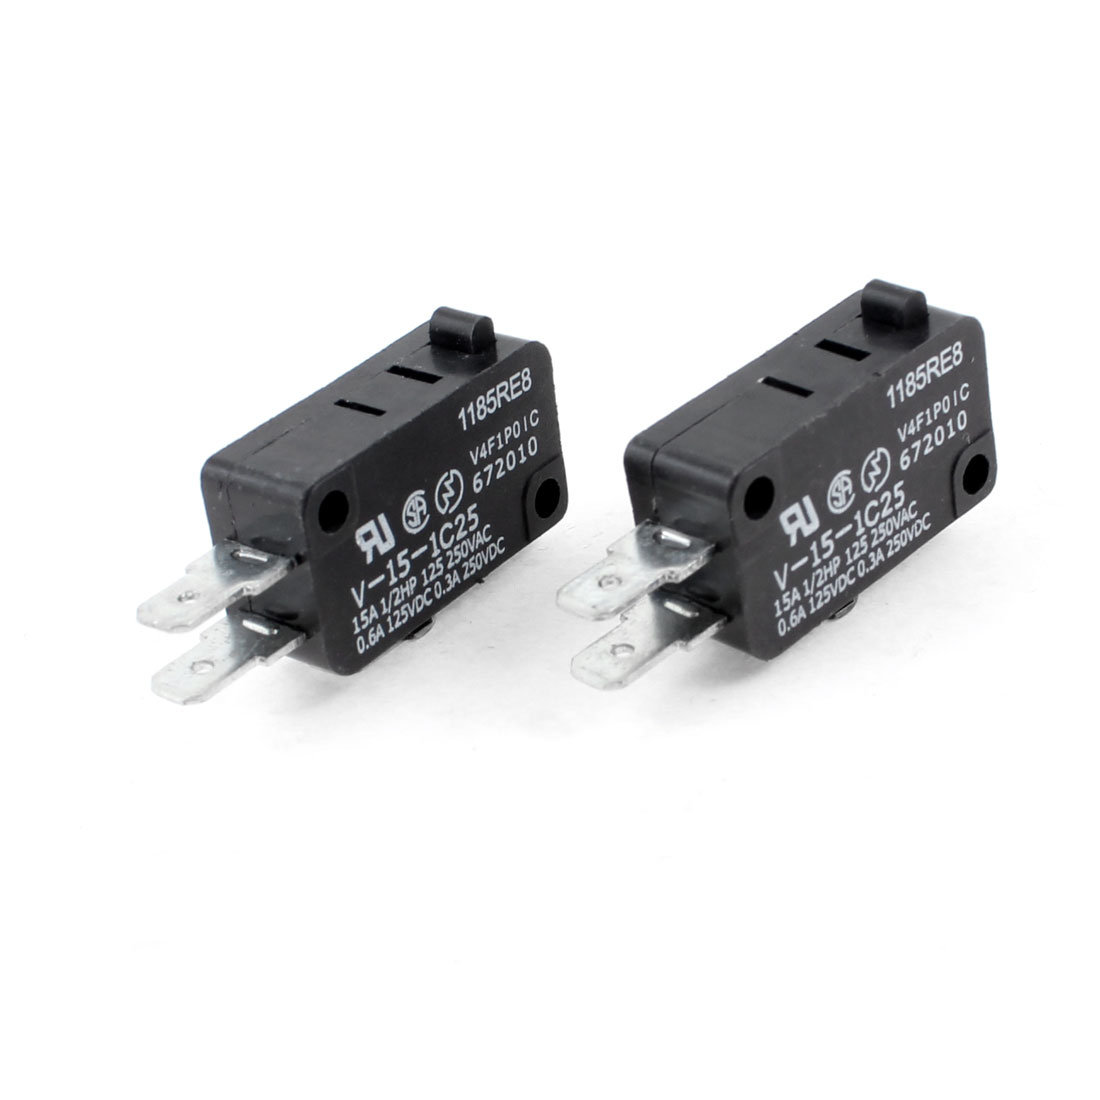 2 x DC 250V/0.3A 125V/0.6A 3 Terminal SPDT 1NO 1NC Push Button Micro Switches